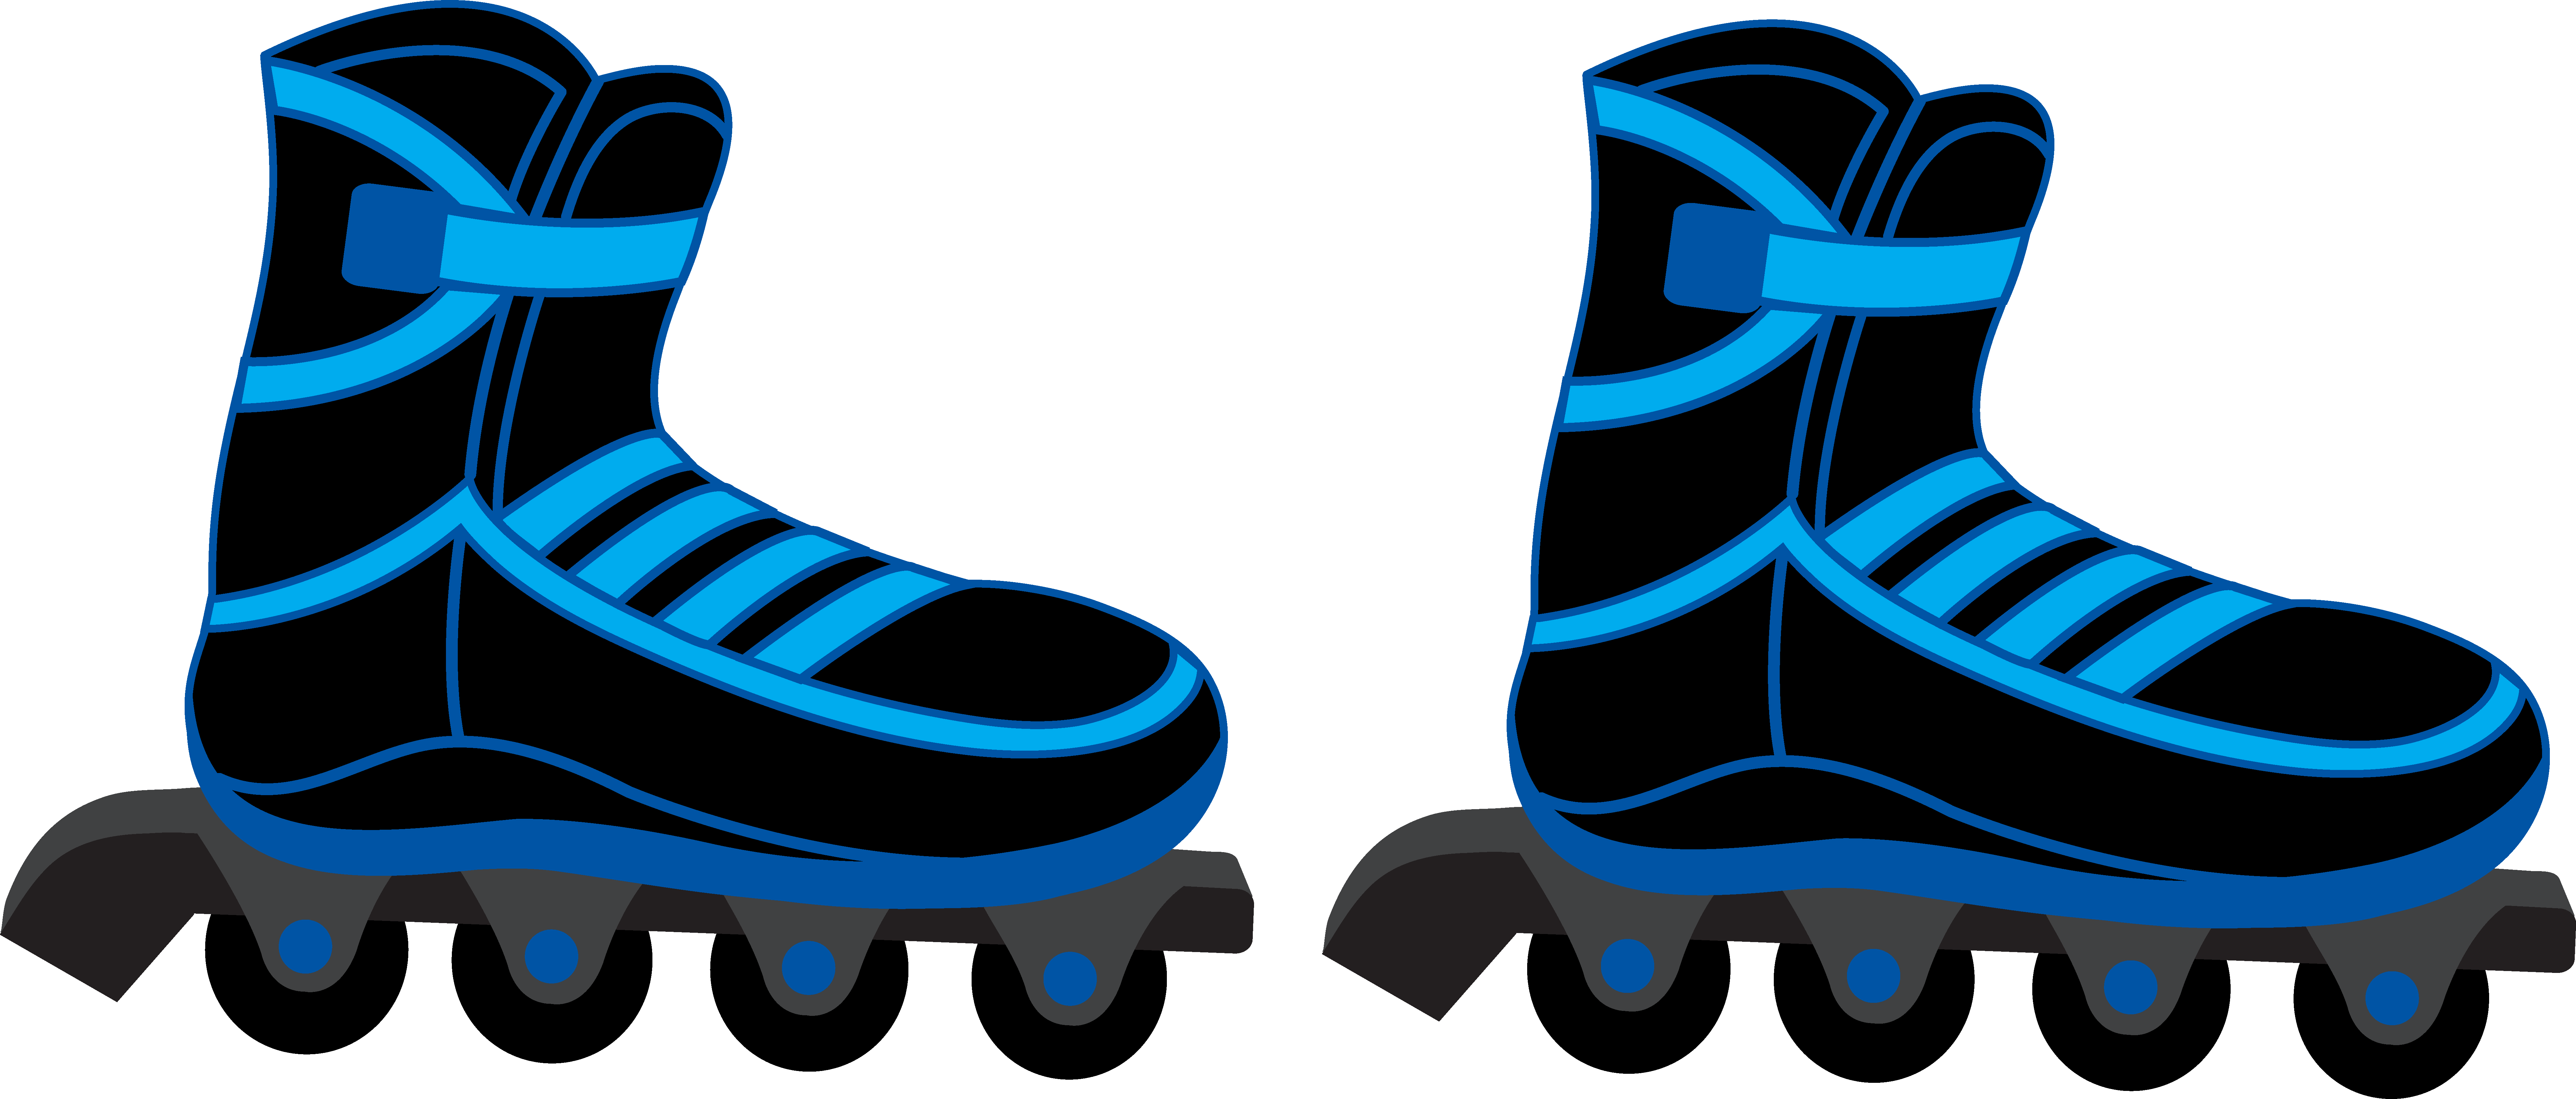 Cool Blue And Black Rollerblades - Free -Cool Blue and Black Rollerblades - Free Clip Art-1